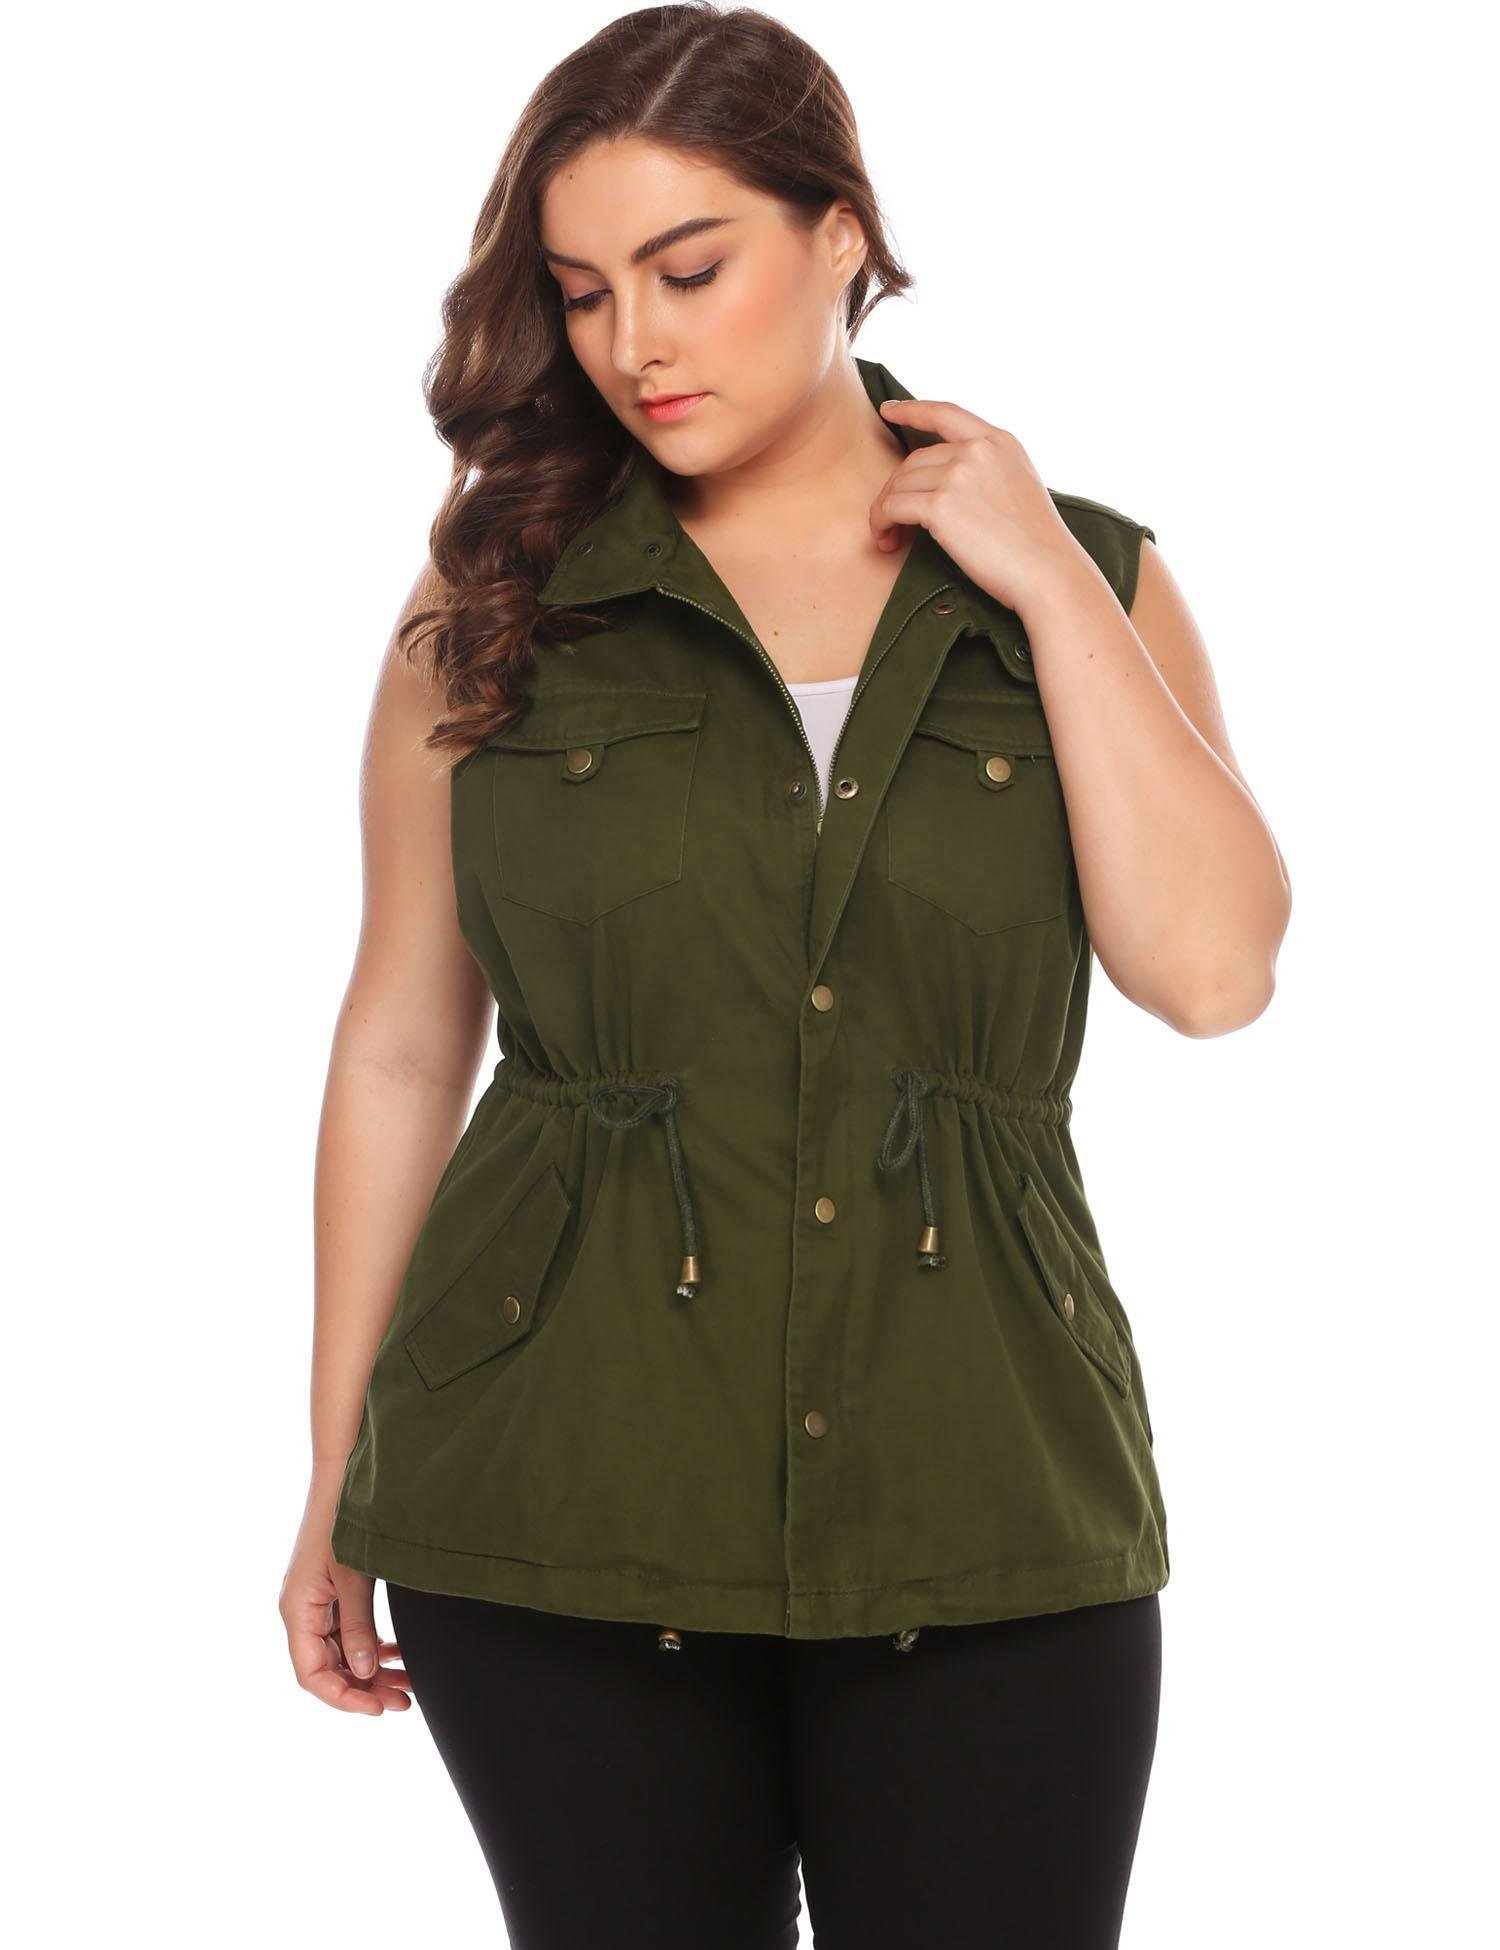 Involand Womens Lightweight Sleeveless Military Anorak Vest,Olive,22 Plus